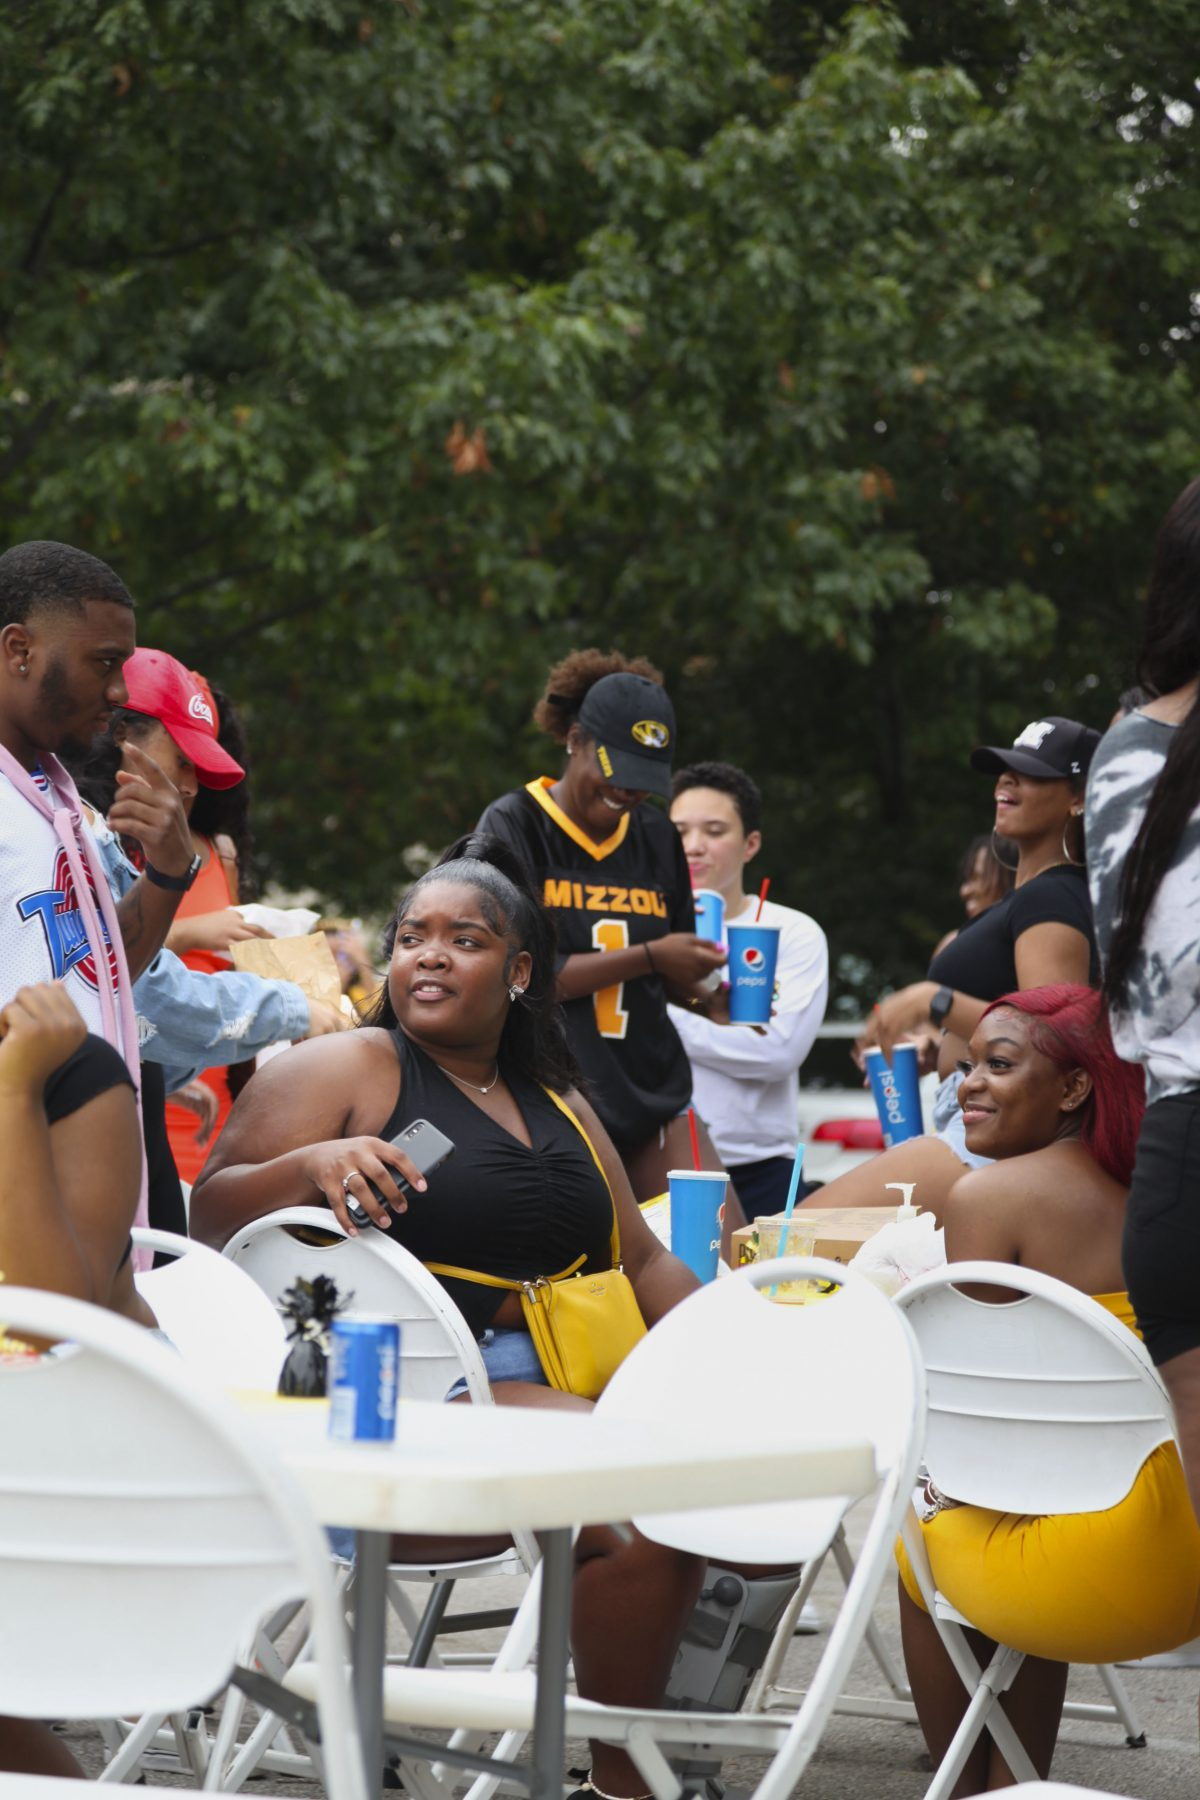 Students, faculty and staff having a great time at the GOBCC homecoming tailgate.